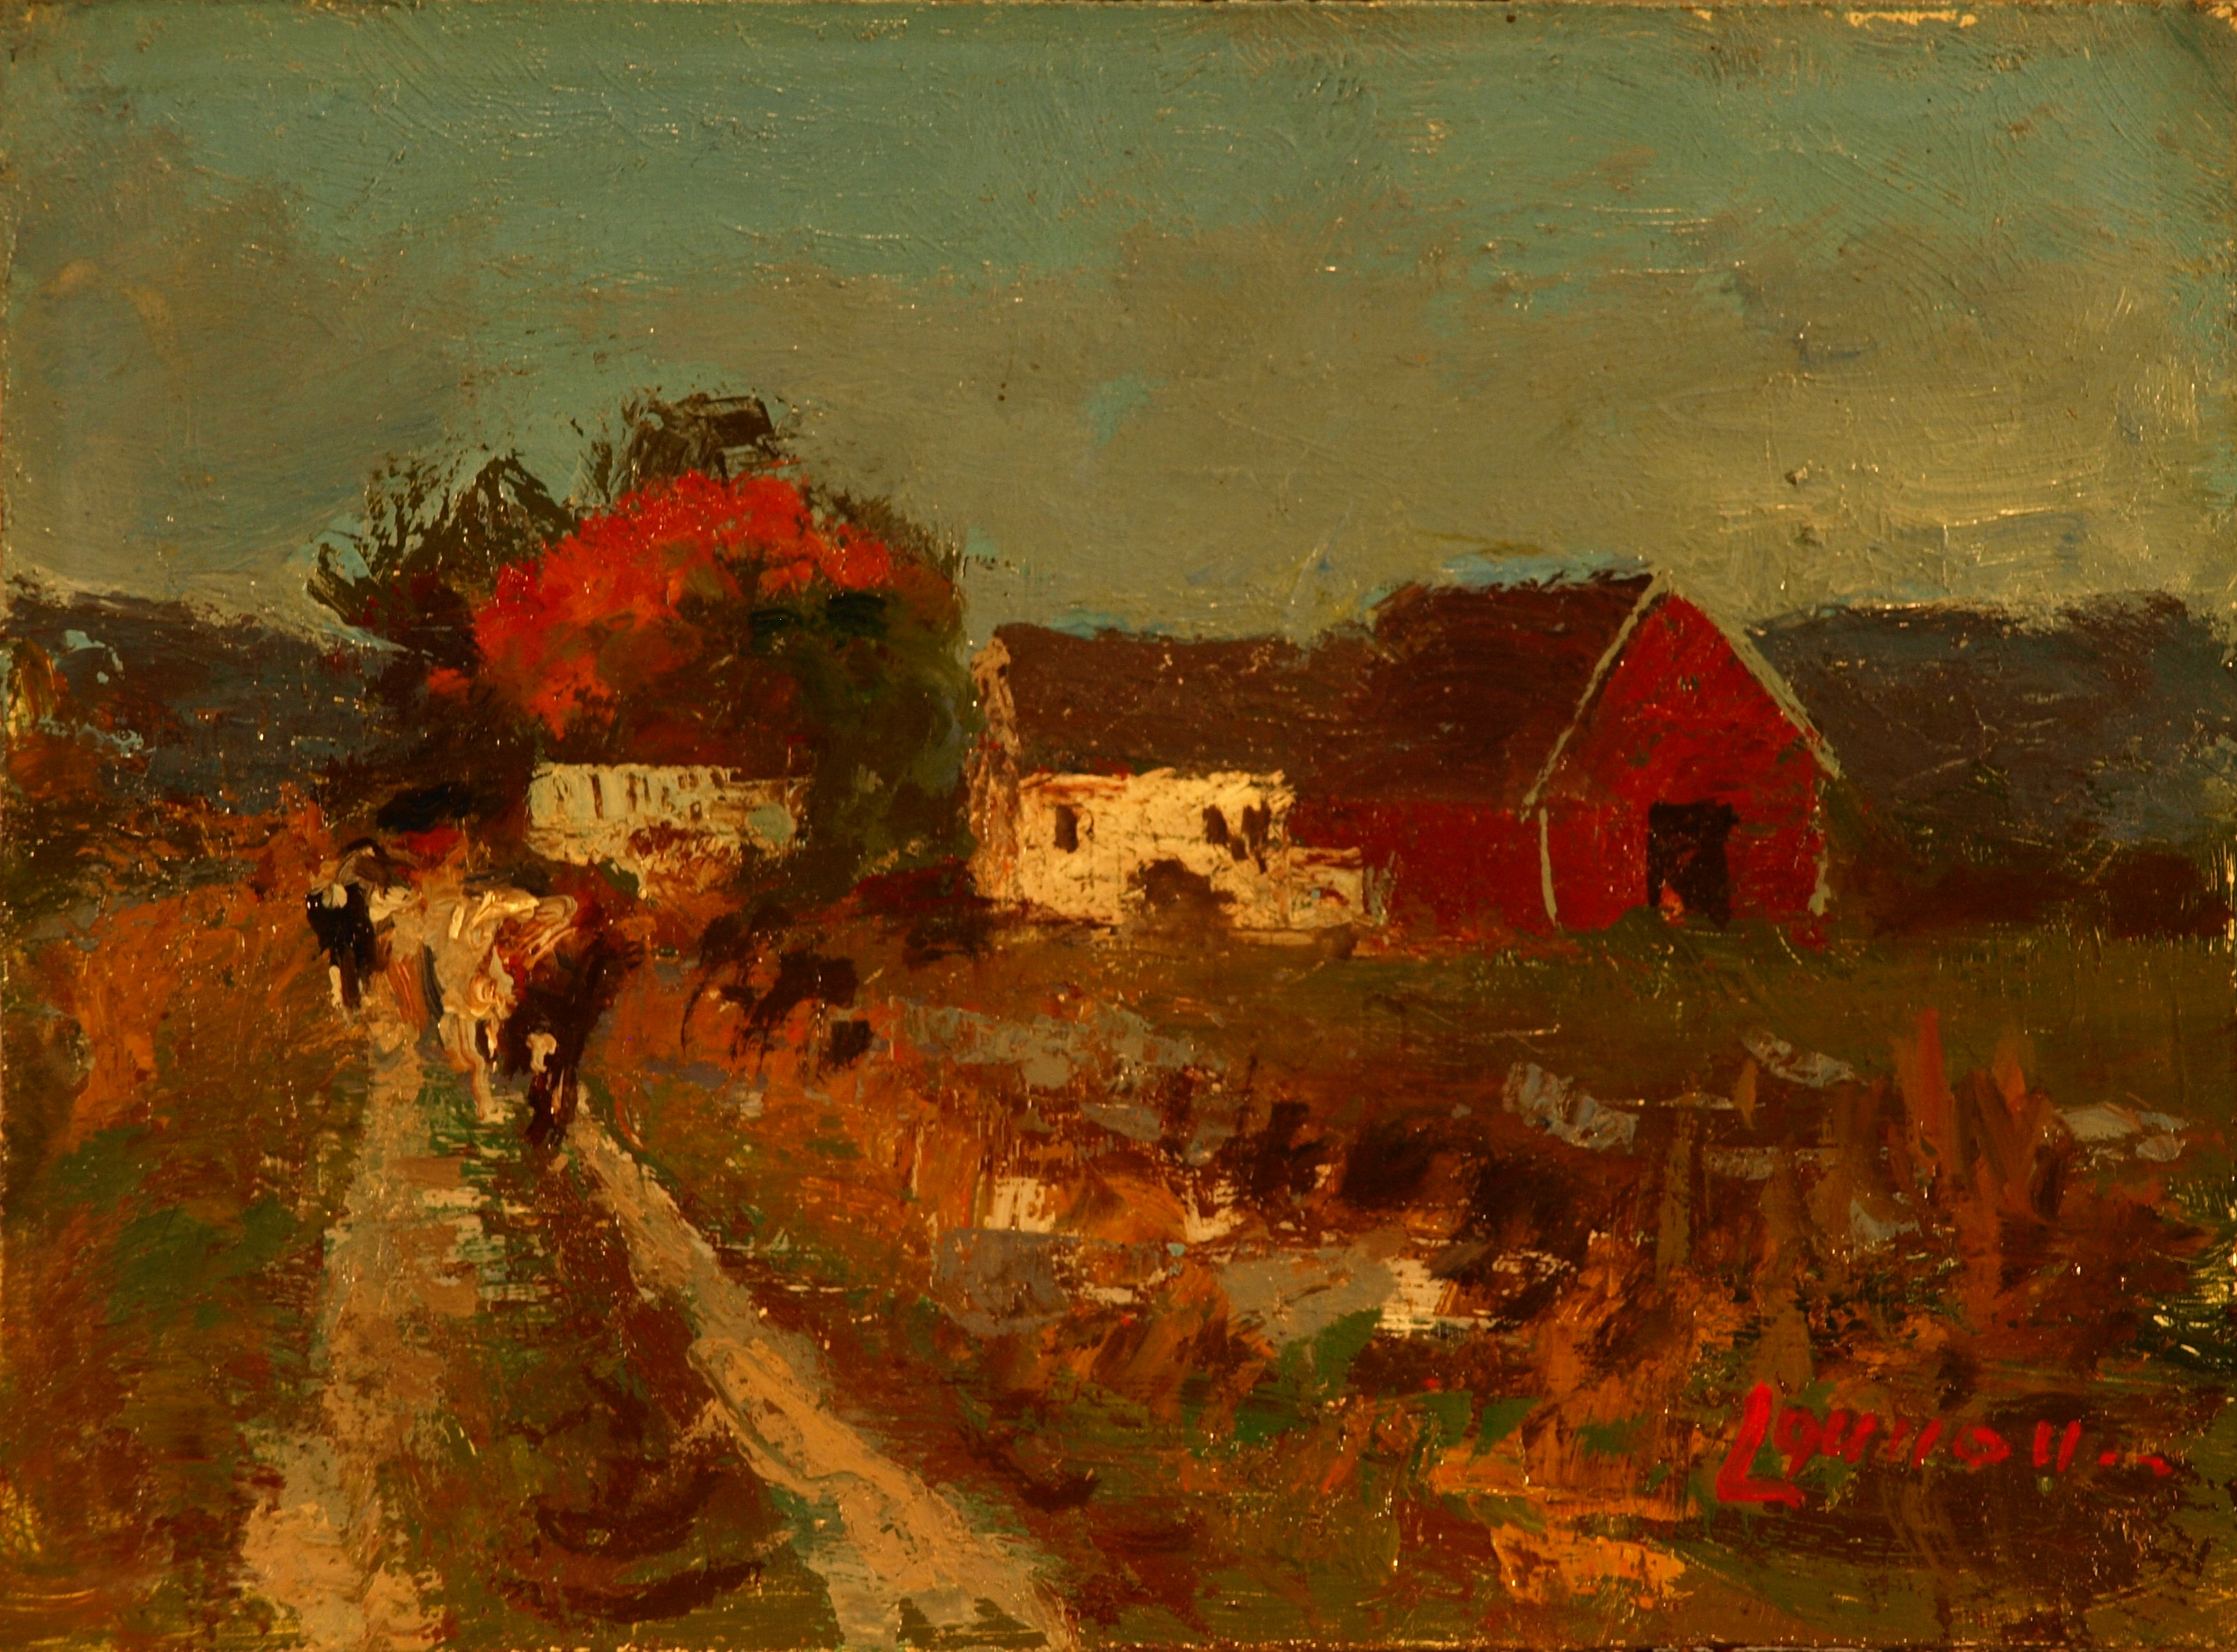 Going to Pasture, Oil on Panel, 6 x 8 Inches, by Bernard Lennon, $175